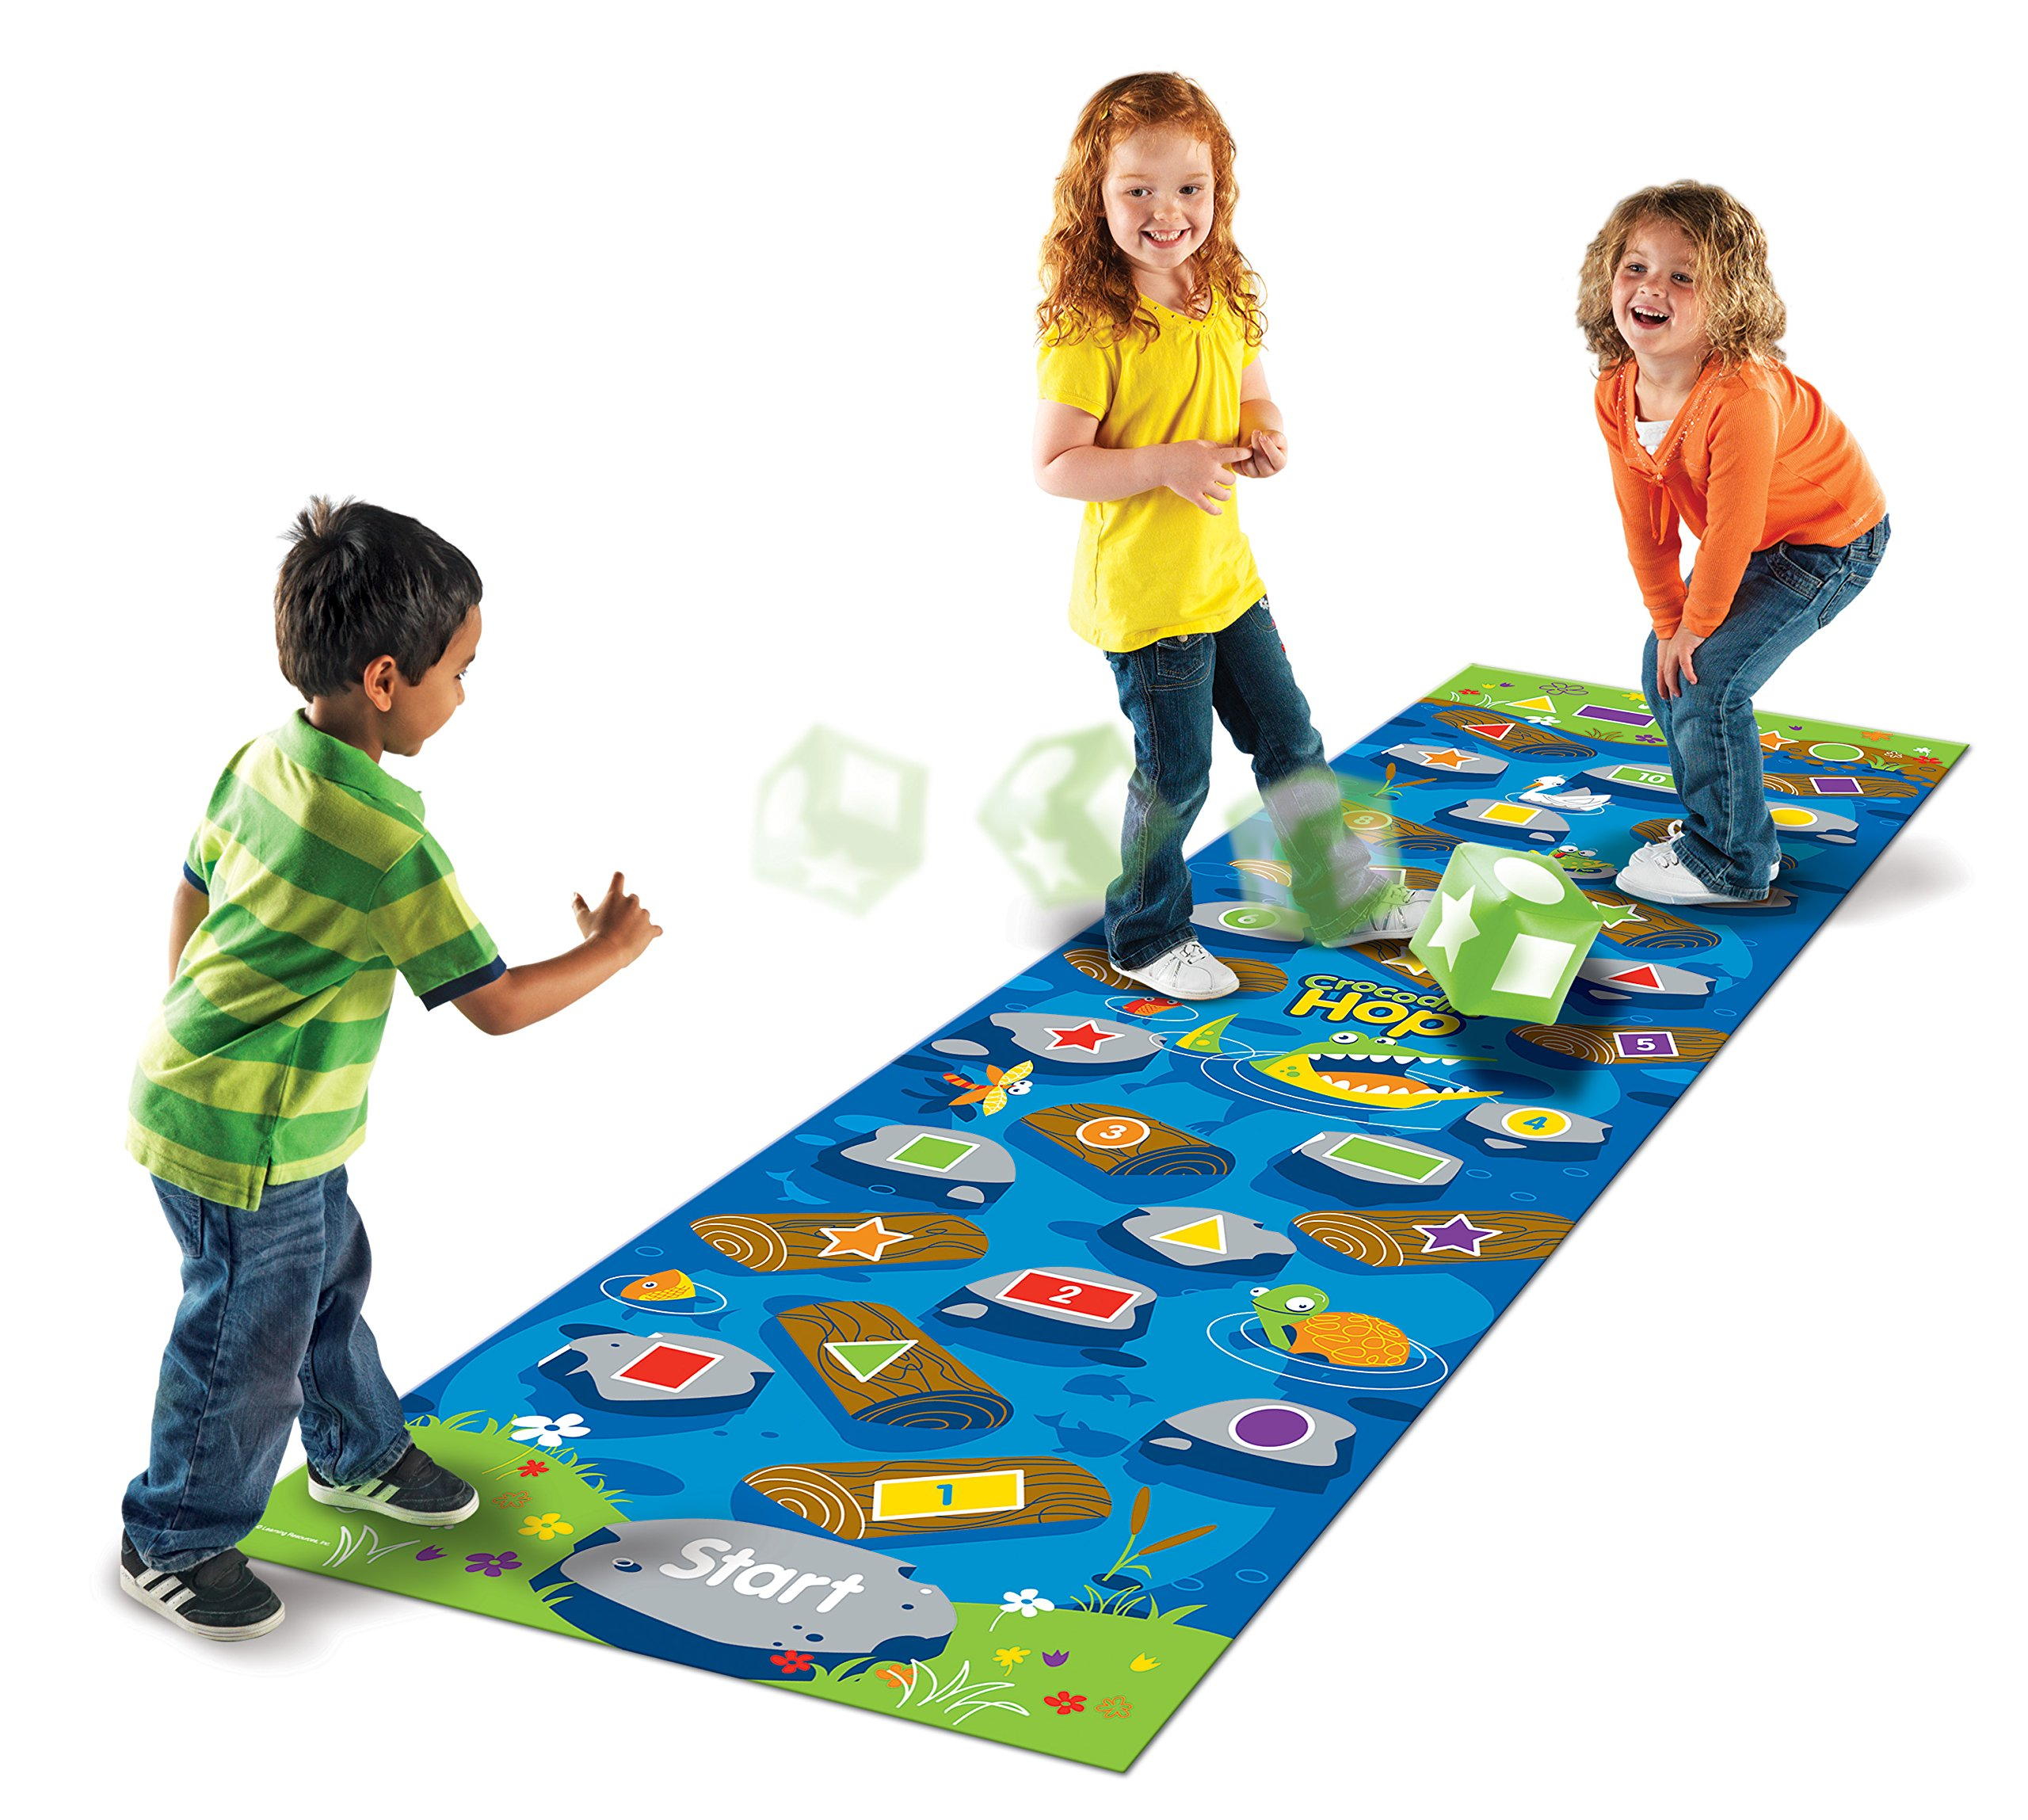 Learning Resources Crocodile Hop Floor Game, Early Learning Skills, Individual Or Group Play, Ages 3+ by Learning Resources (Image #3)